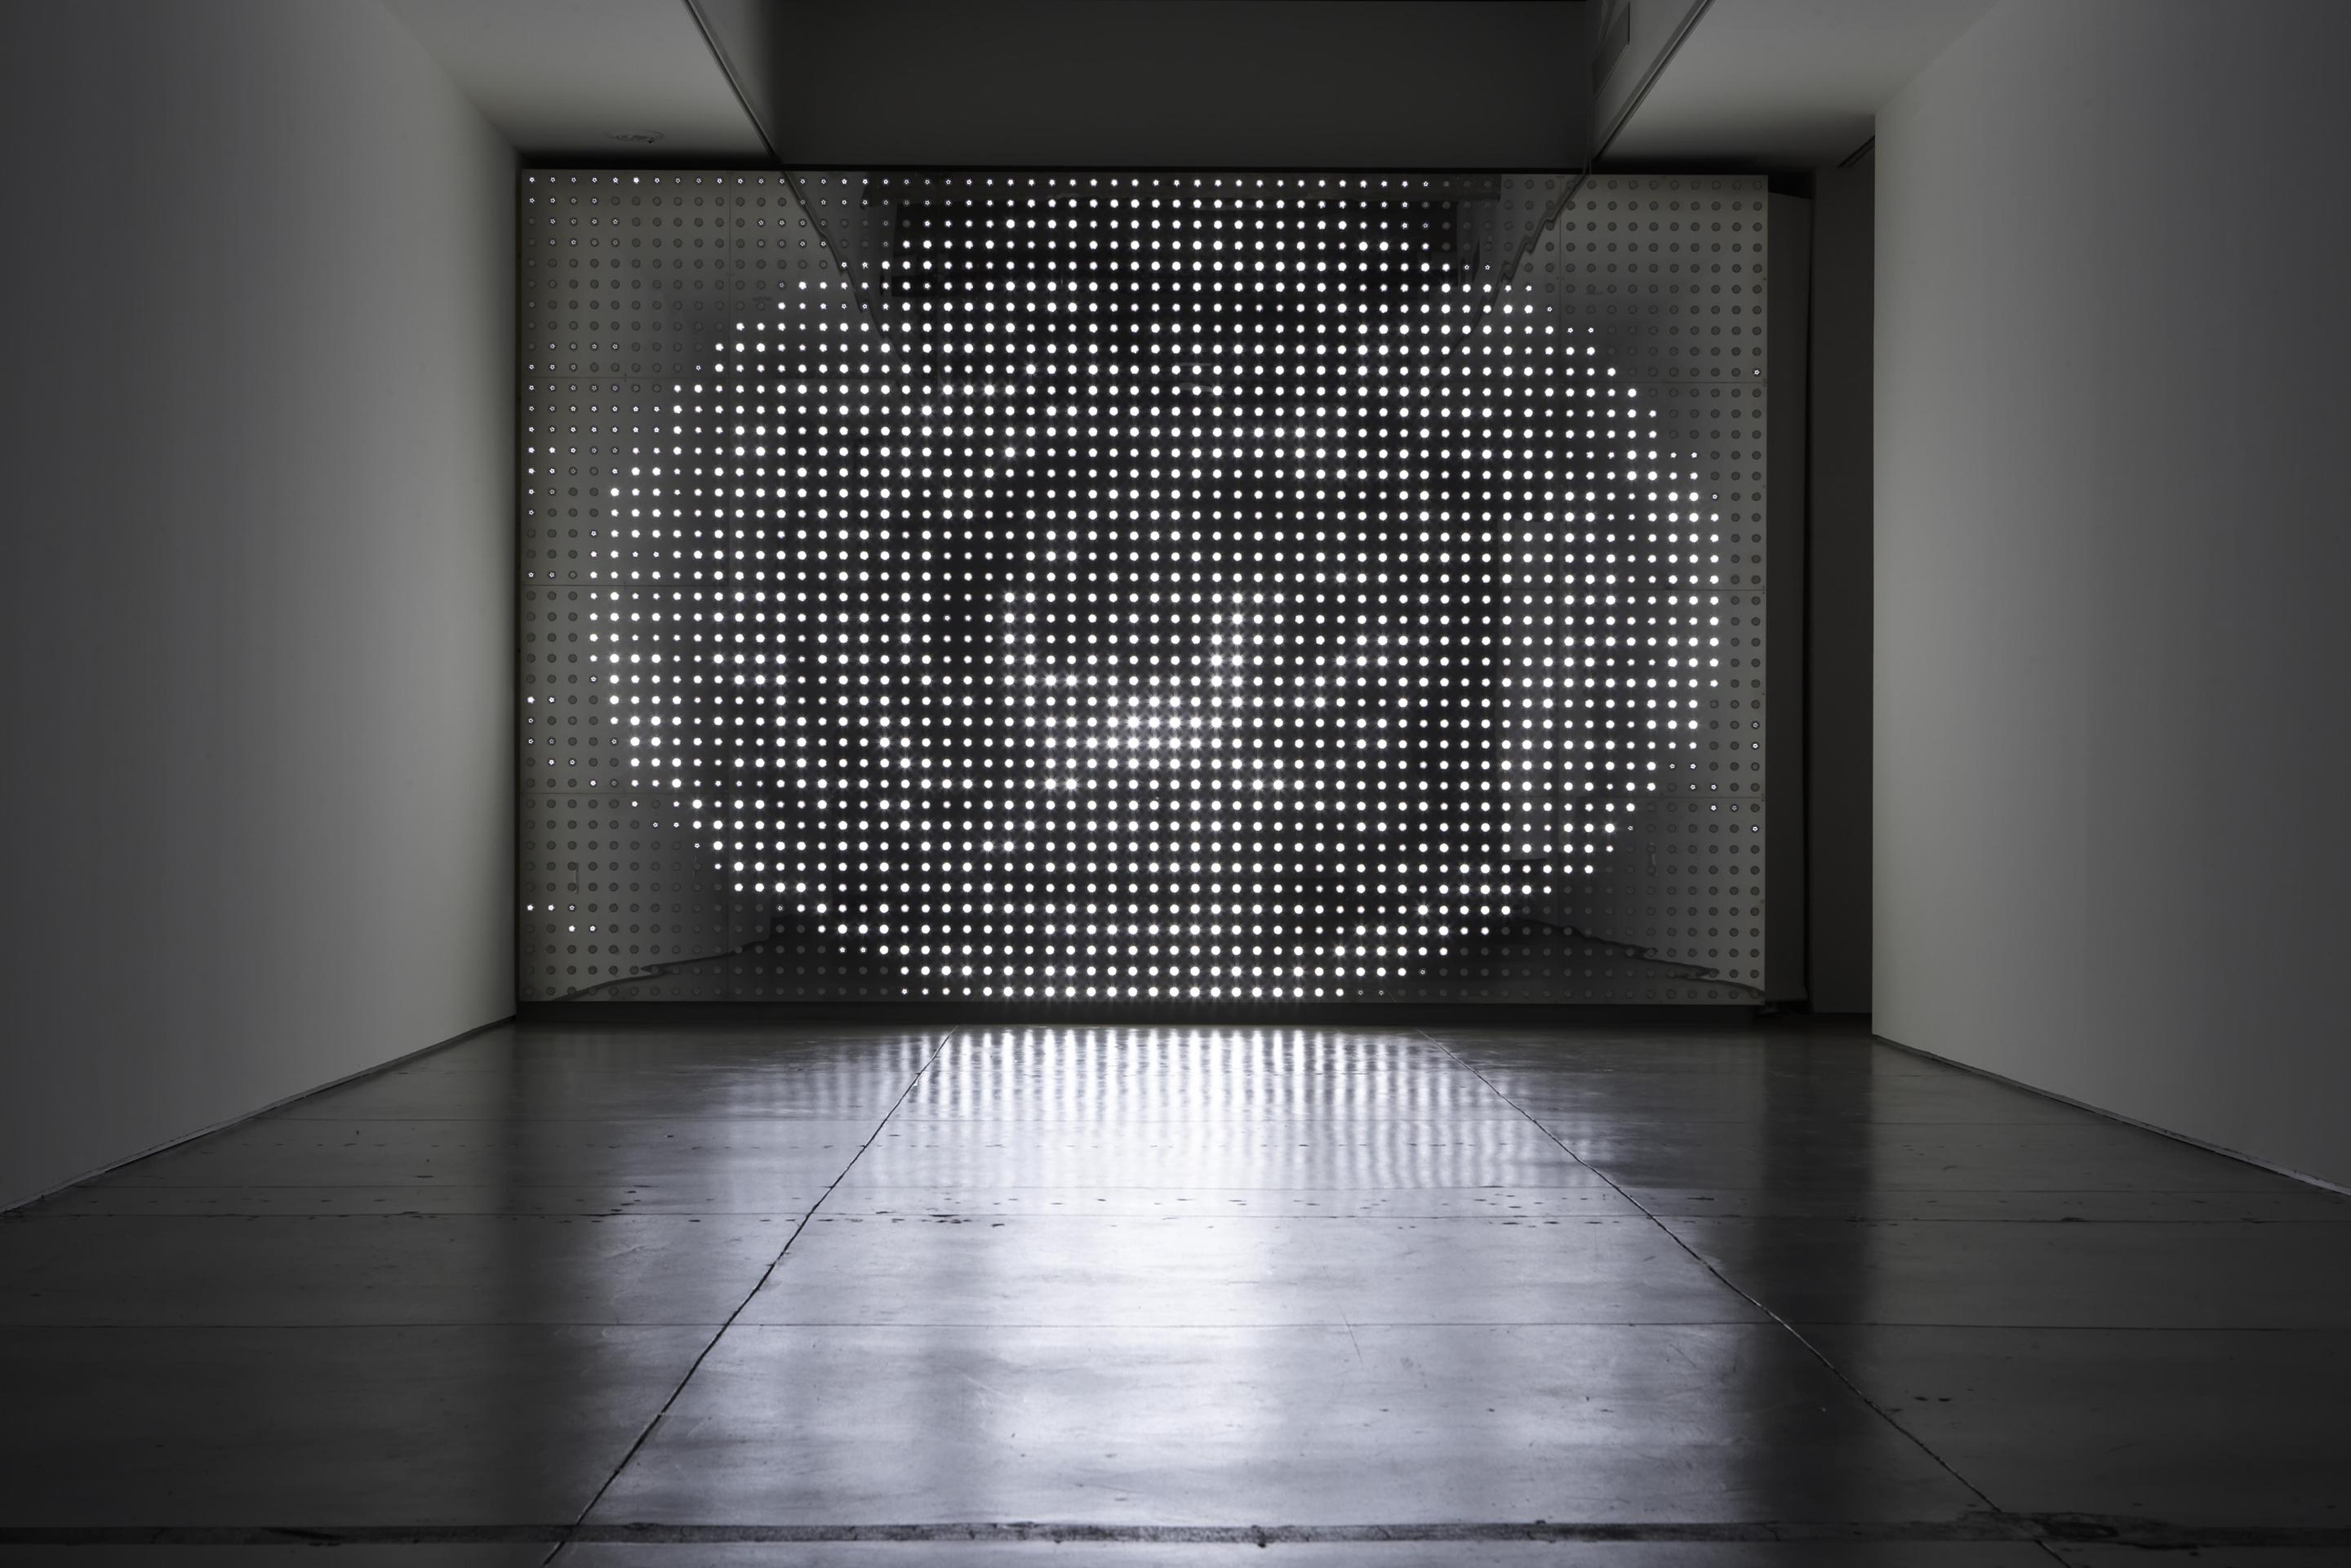 LEO VILLAREAL Diamond Sea, 2007, LEDs, mirror finished stainless steel, custom software, electrical hardware, 120 x 180 inches, SGI1973.